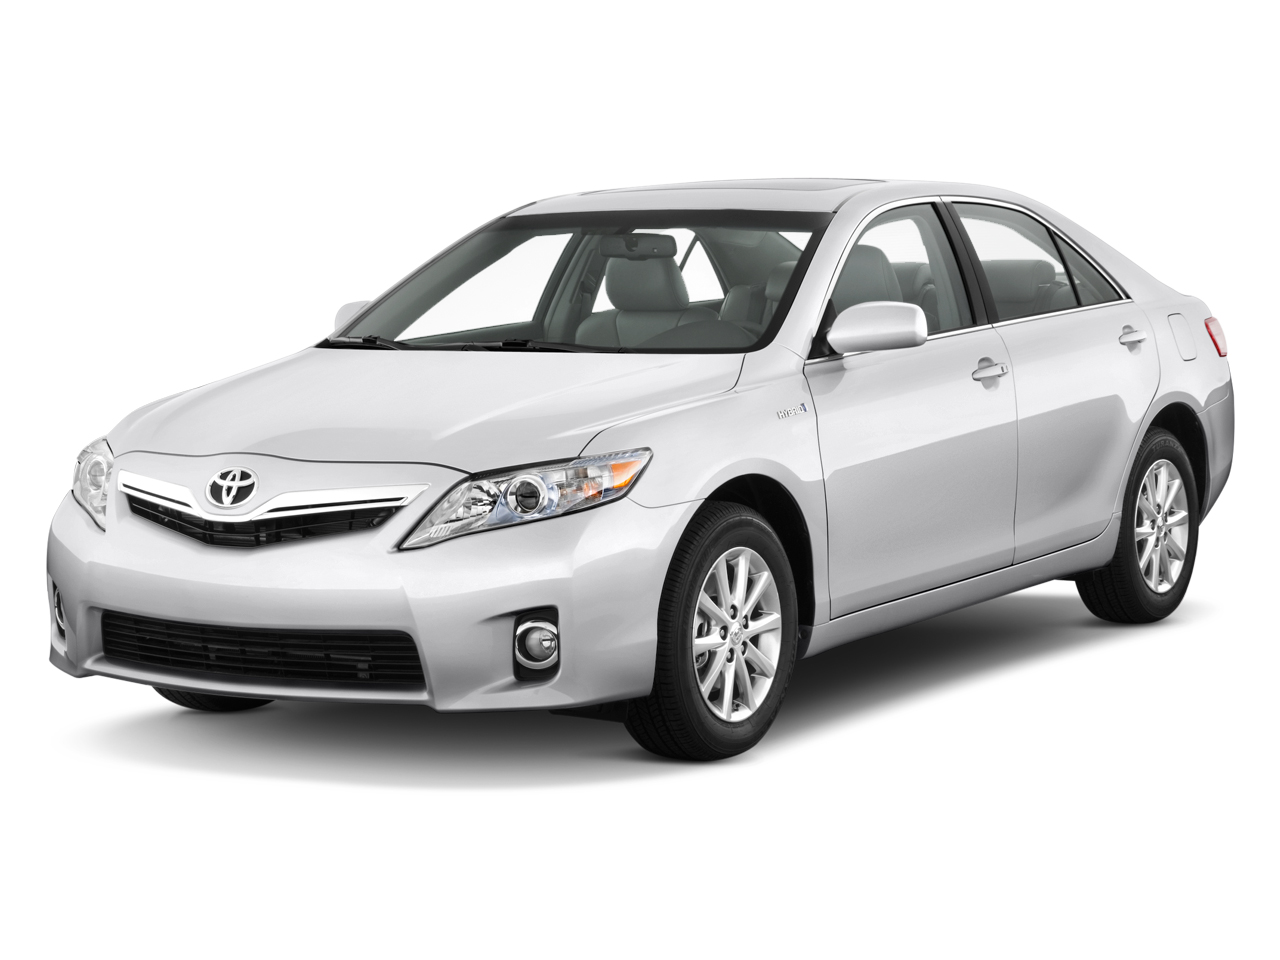 2010 toyota camry hybrid review ratings specs prices. Black Bedroom Furniture Sets. Home Design Ideas